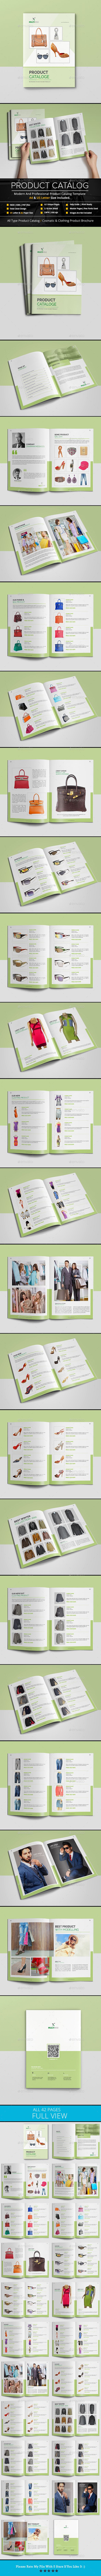 #Product Catalog Template - Catalogs #Brochures